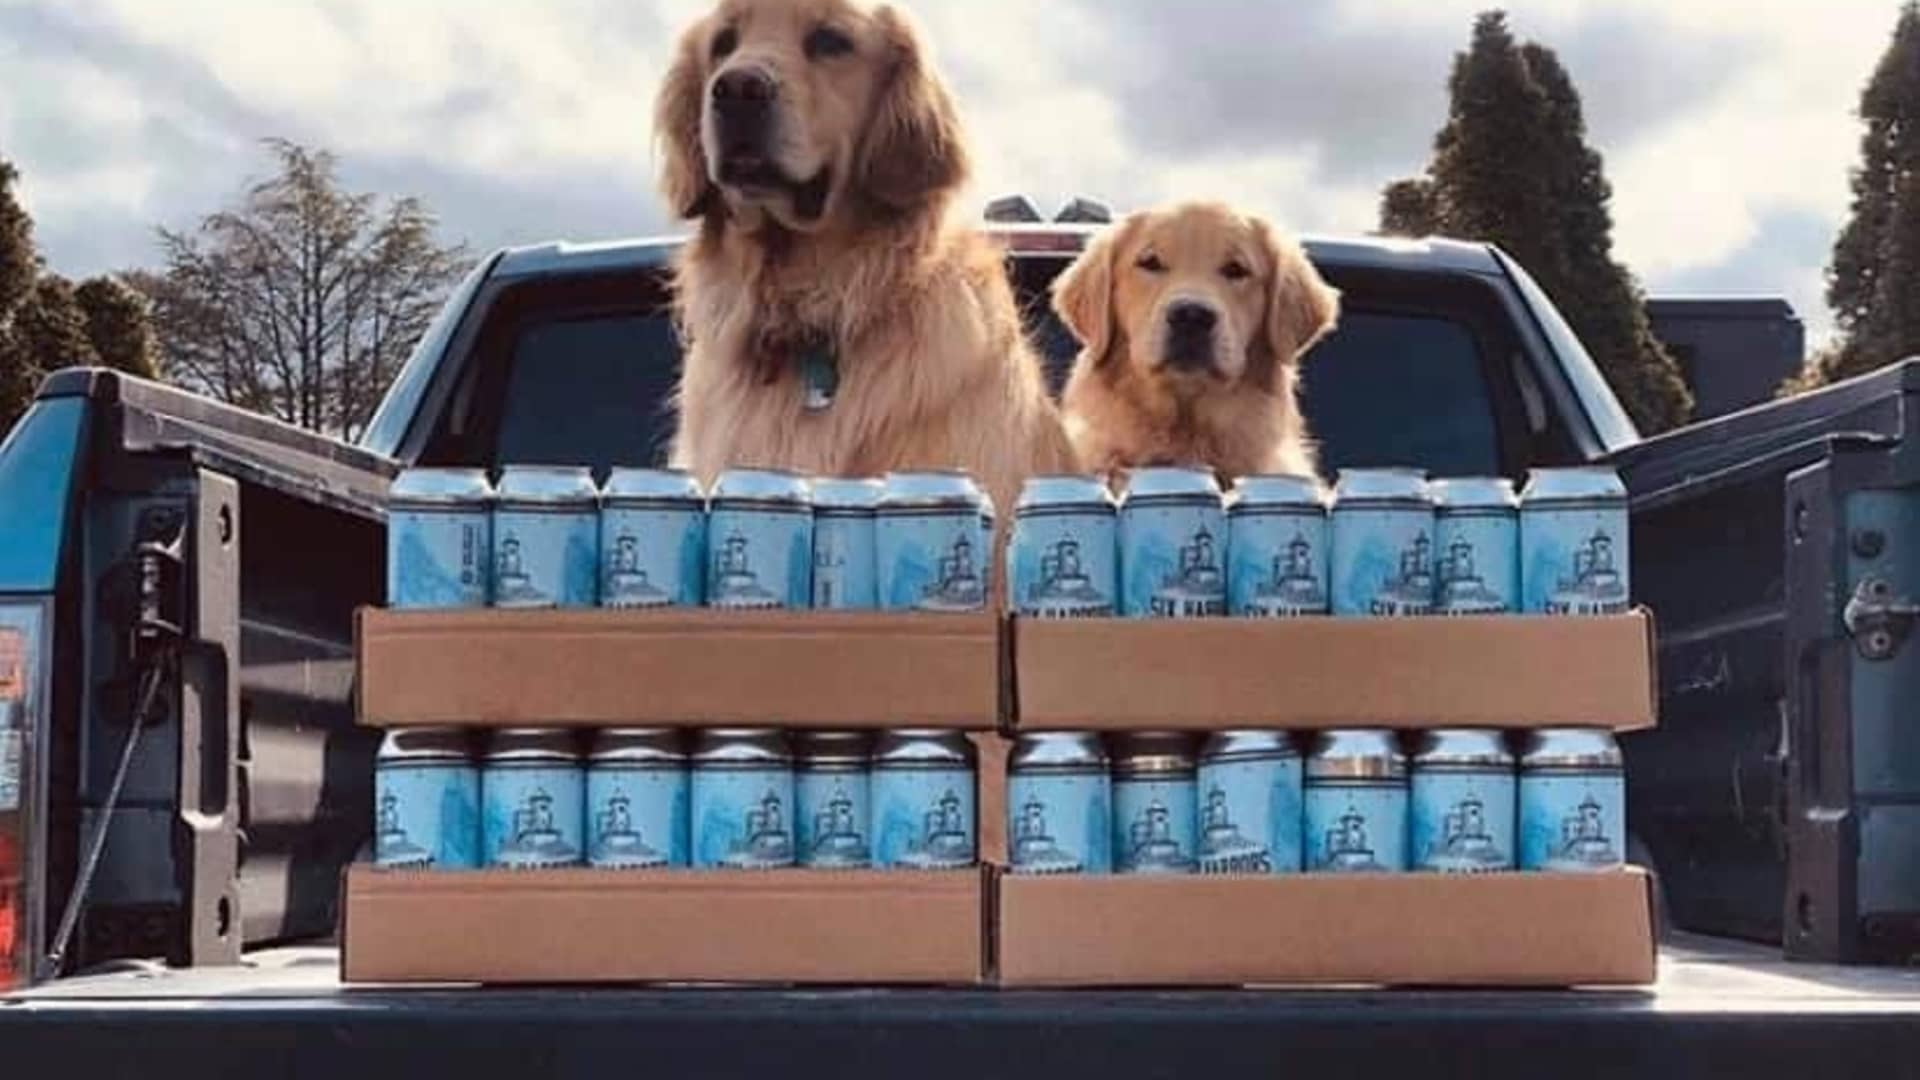 Golden retrievers Buddy, 3, and Barley, 1, join their owners on beer deliveries amid Covid-19 pandemic.